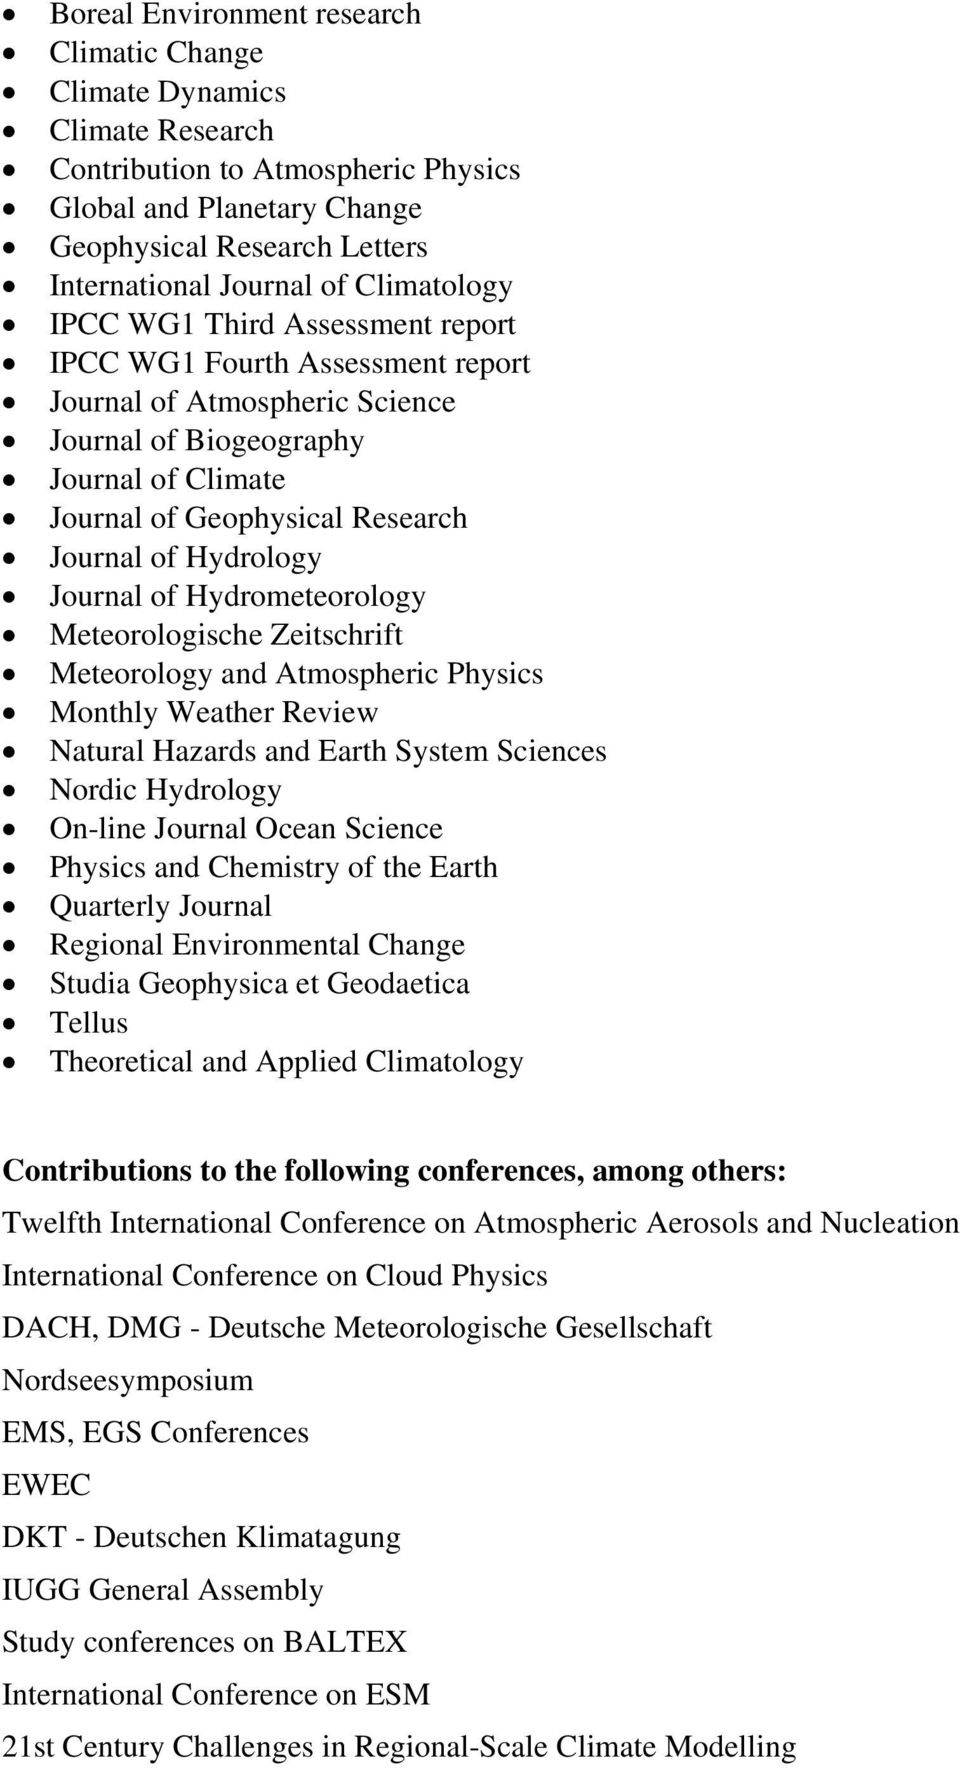 Hydrology Journal of Hydrometeorology Meteorologische Zeitschrift Meteorology and Atmospheric Physics Monthly Weather Review Natural Hazards and Earth System Sciences Nordic Hydrology On-line Journal